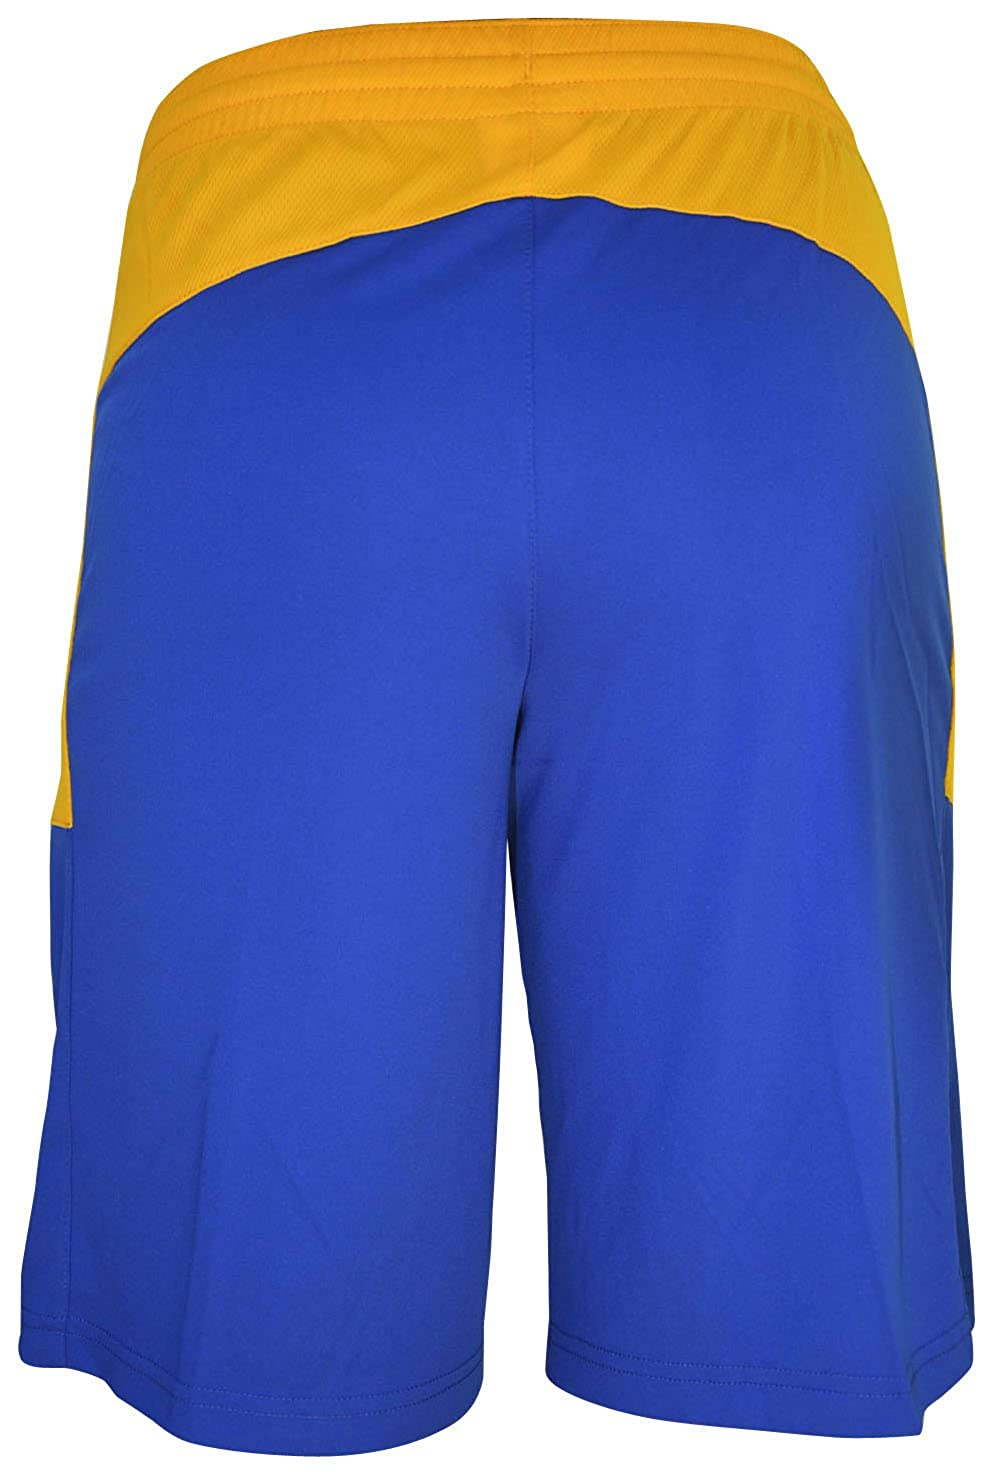 Golden State Warriors NBA Youth Jersey Athletic Shorts